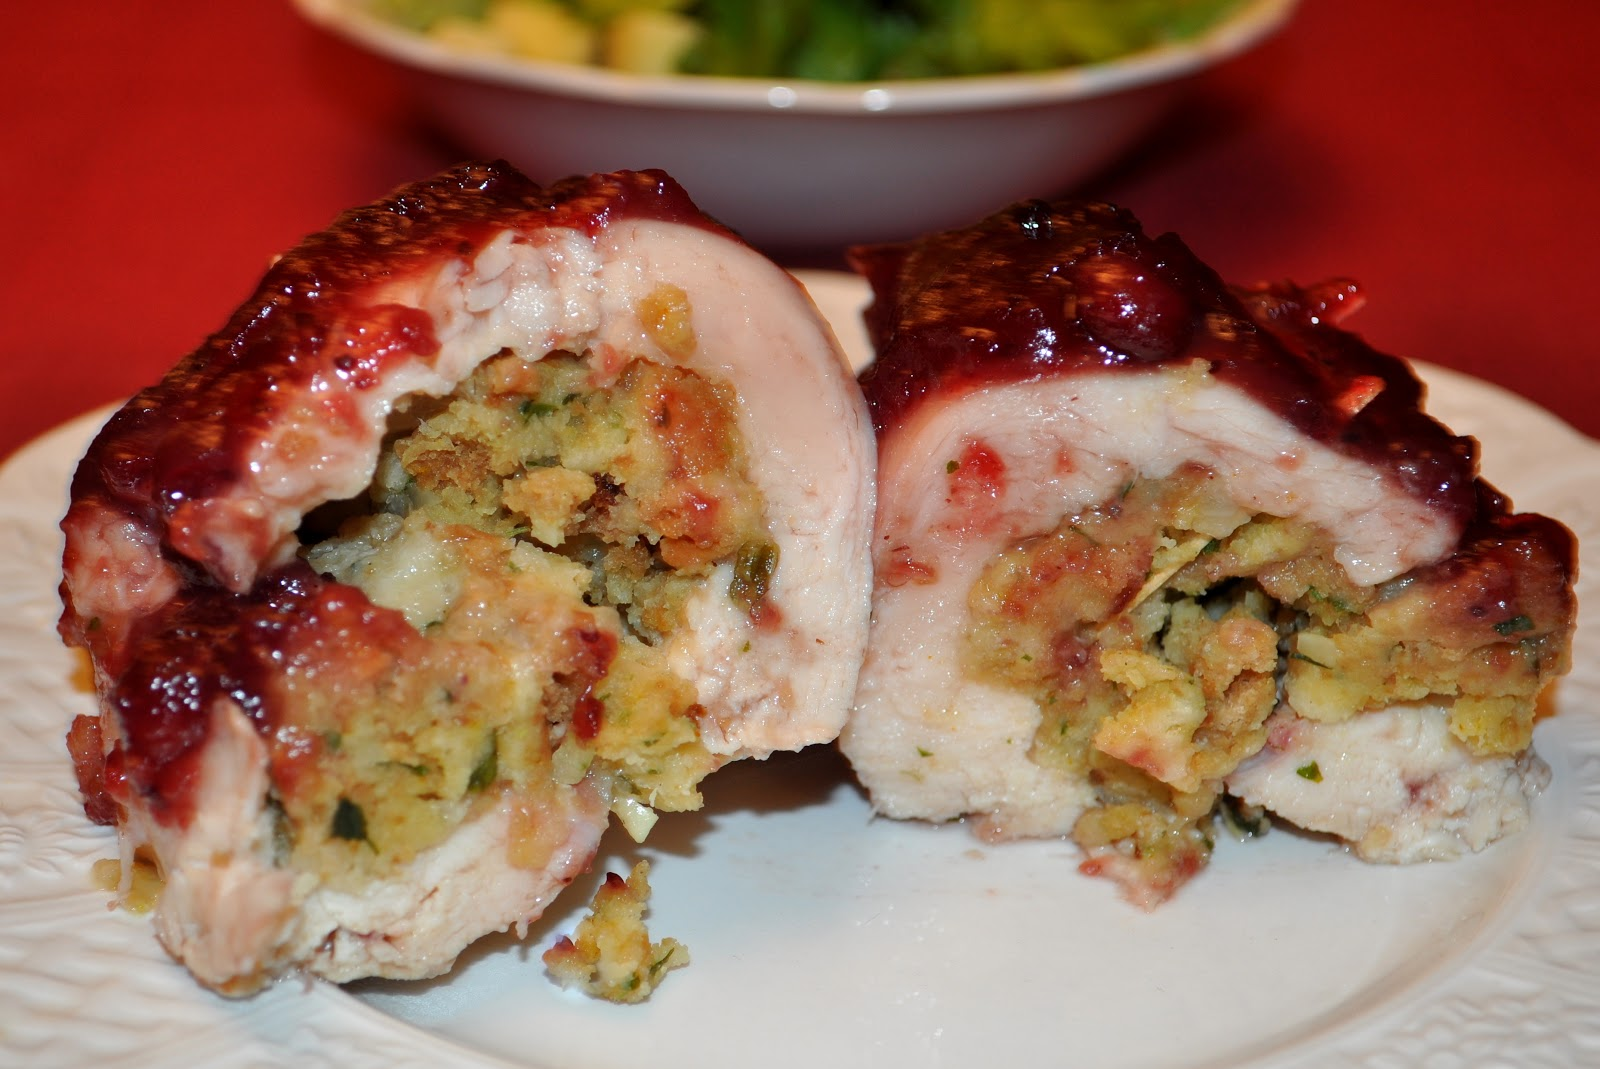 Cookingwithsweetface Stuffing Stuffed Chicken With